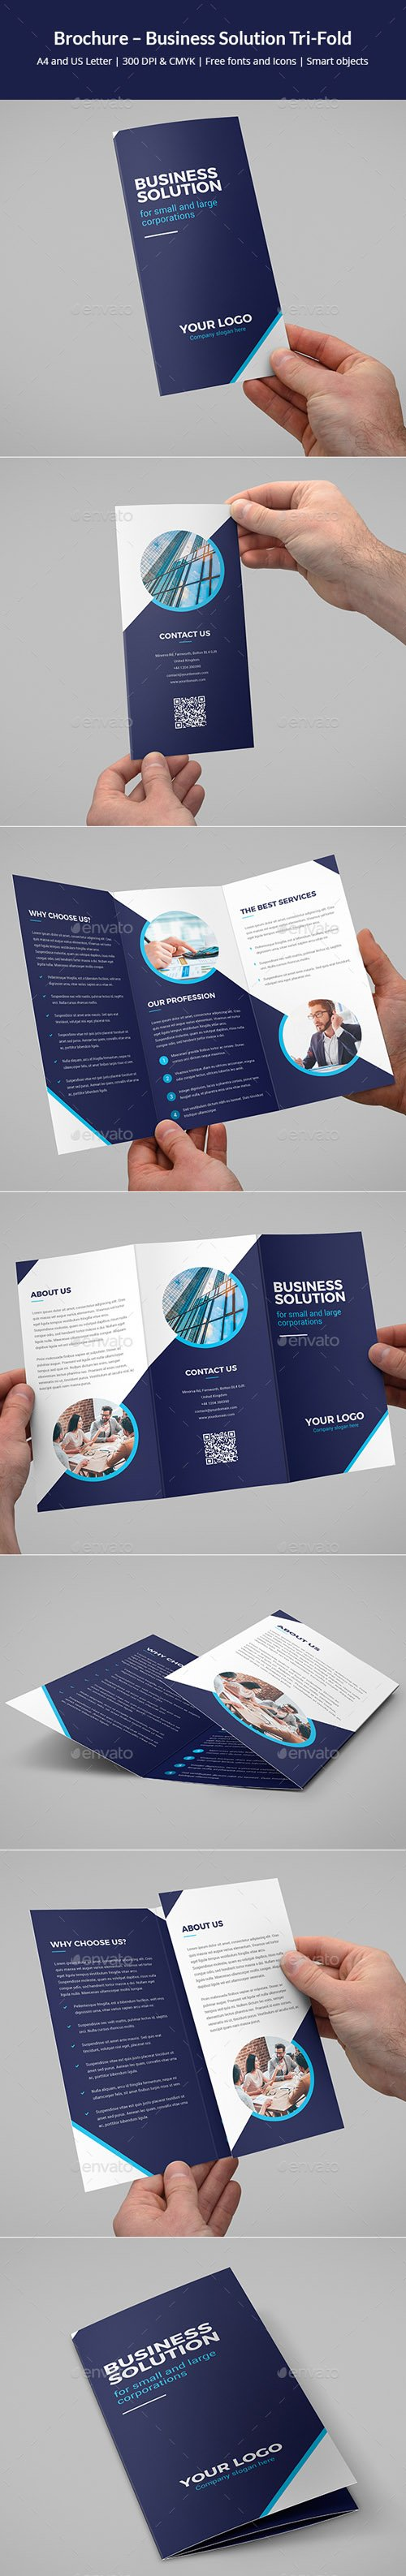 Brochure – Business Solution Tri-Fold 19524111